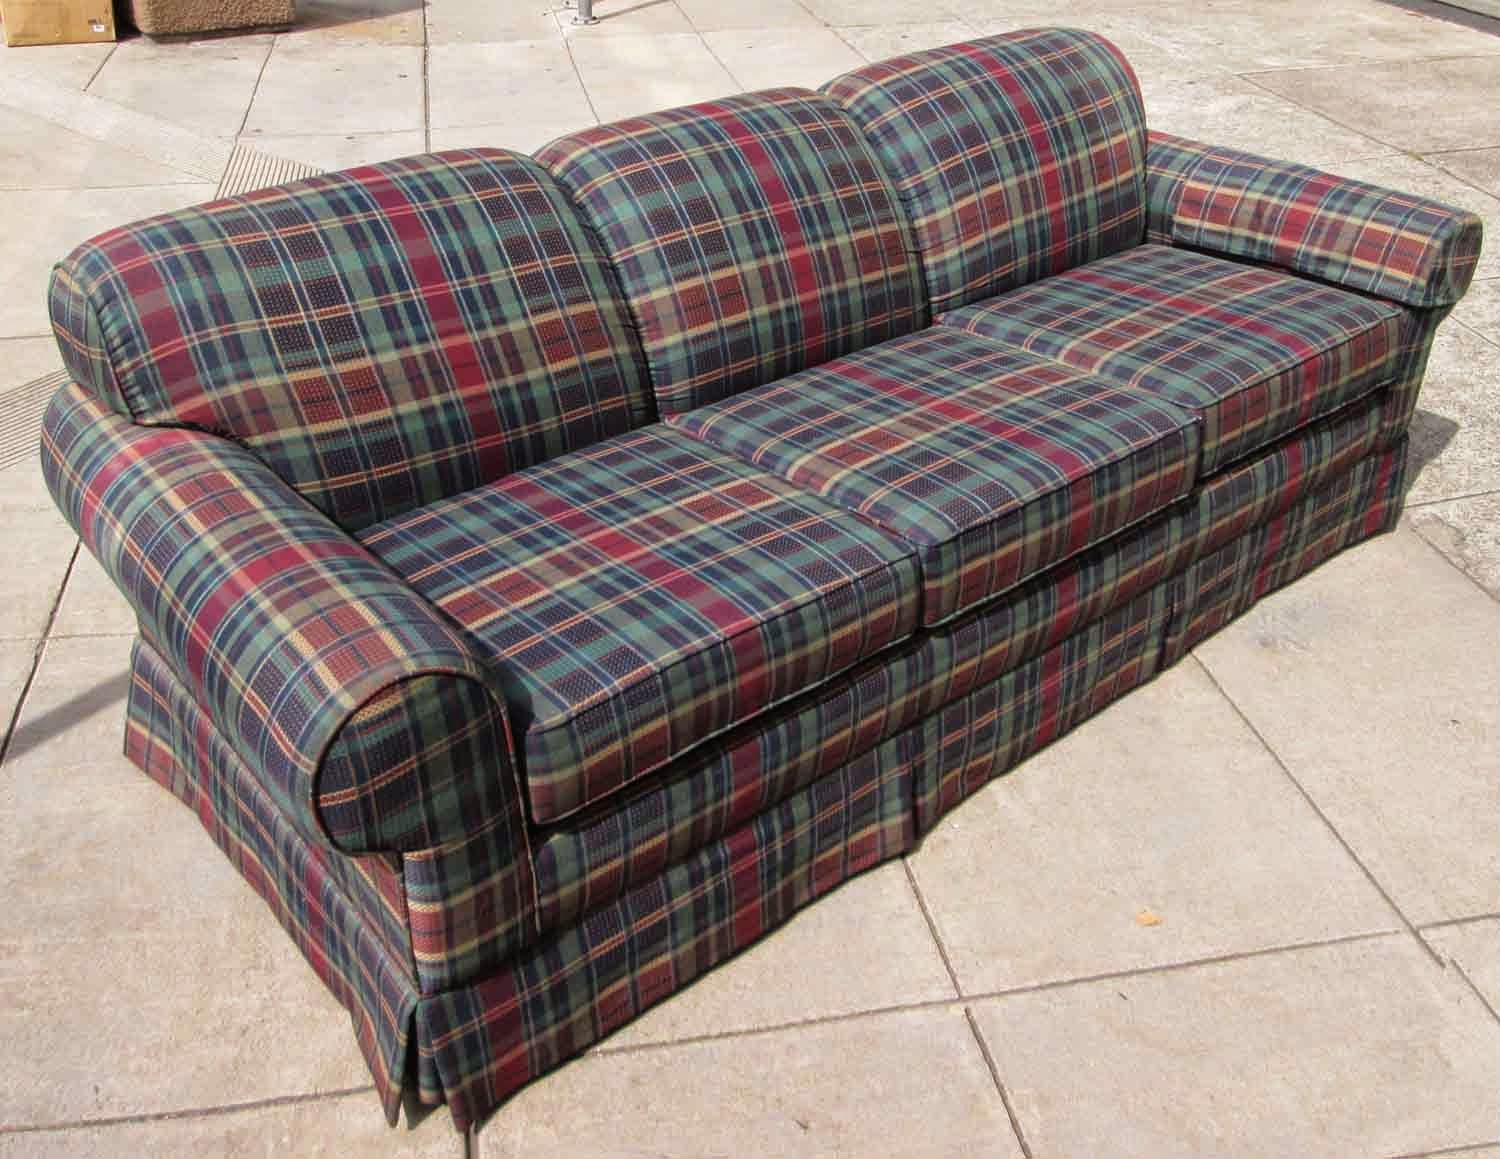 plaid sofa the tremont elegant red plaid sofa set 11880. Black Bedroom Furniture Sets. Home Design Ideas